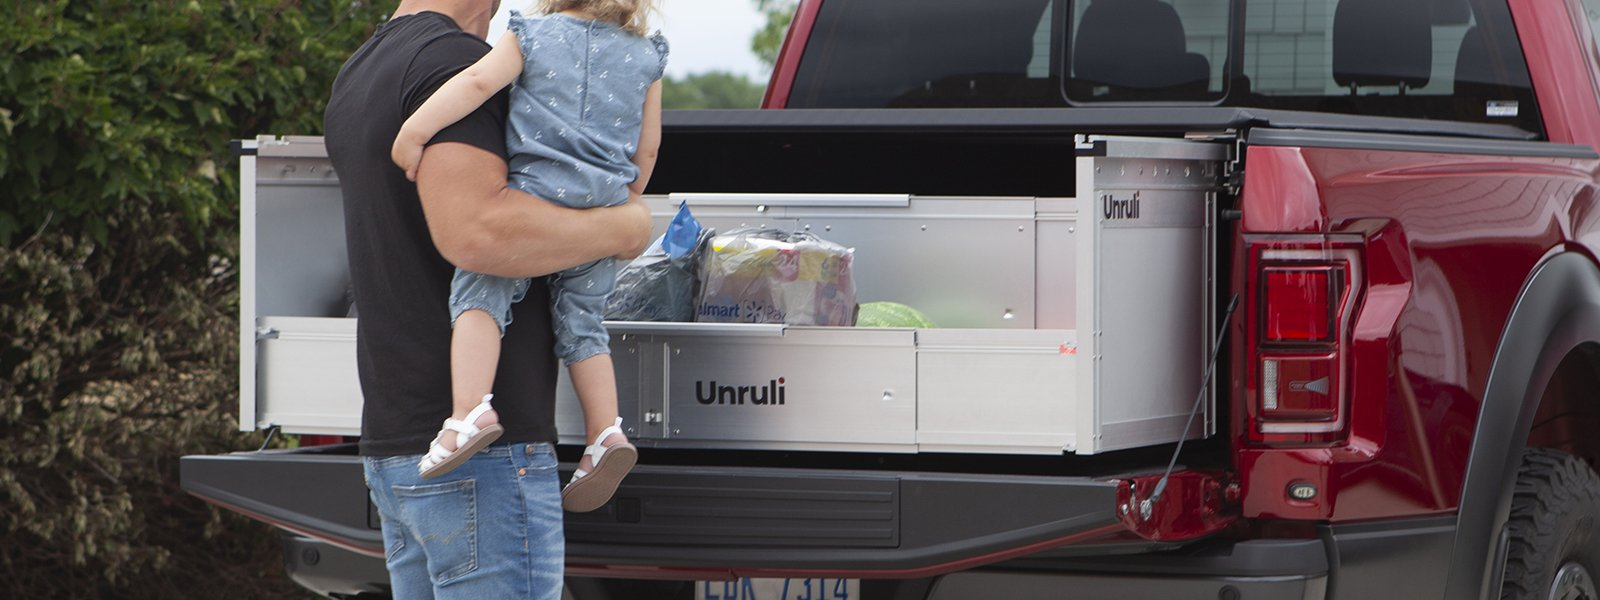 father and daughter pickup truck unloading groceries